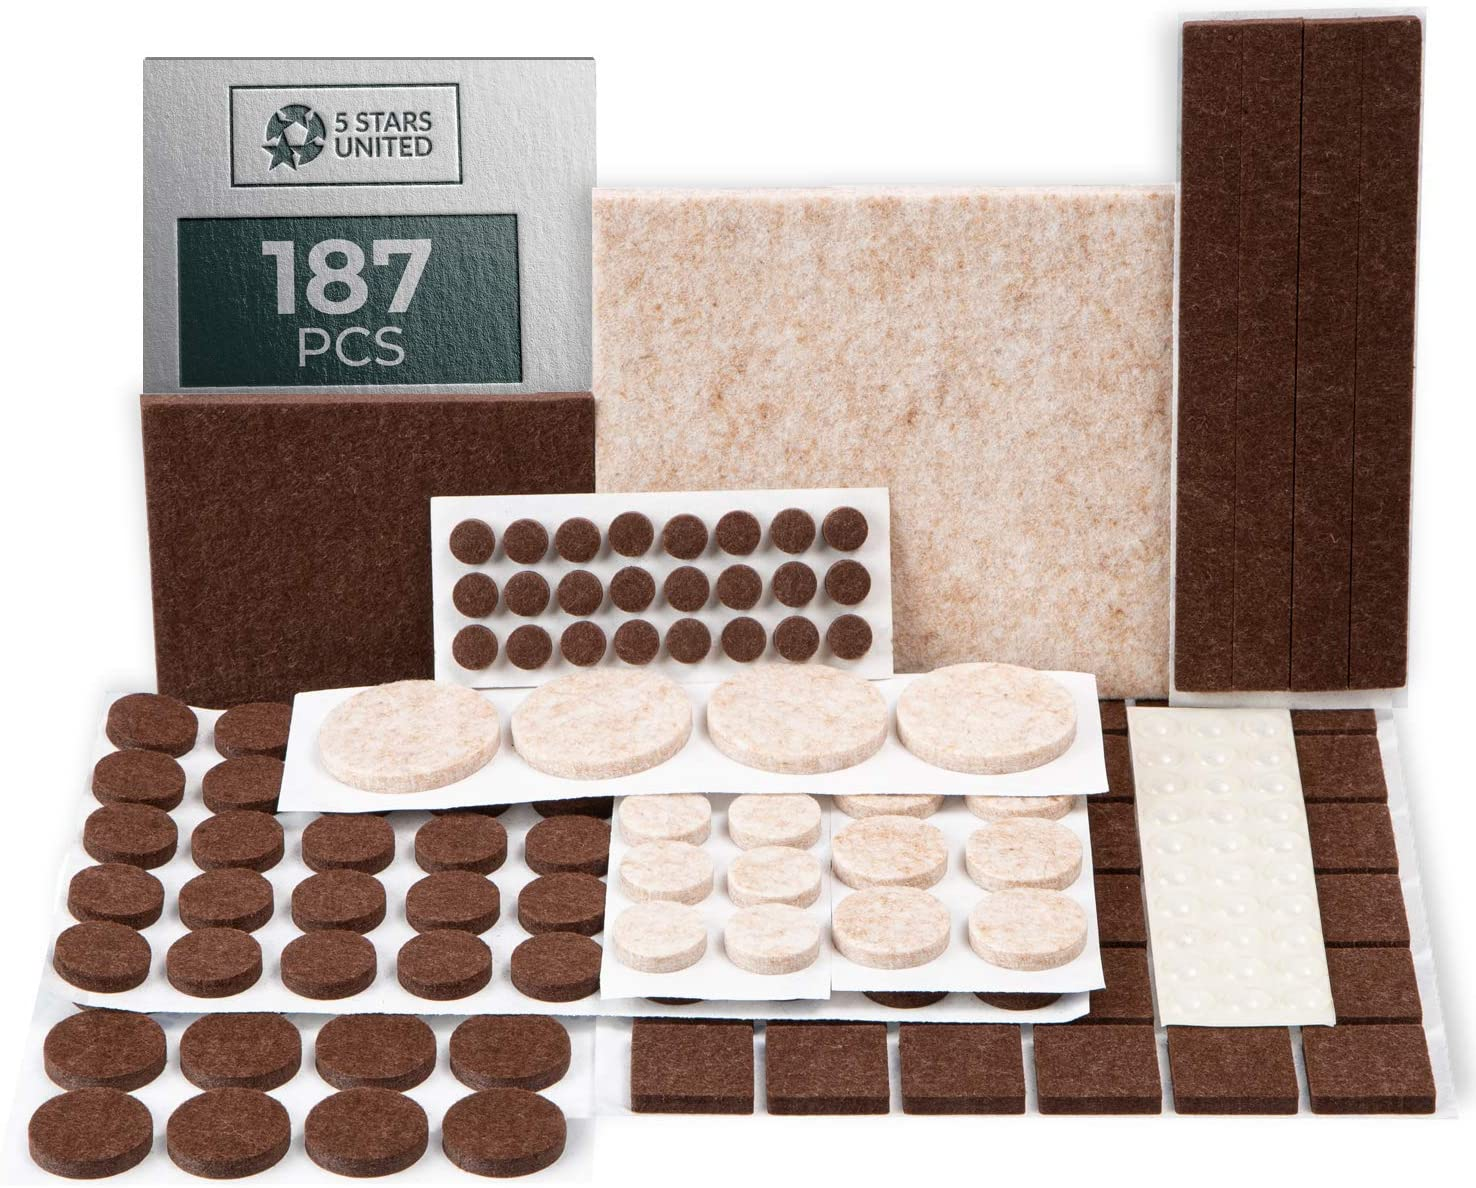 Felt Furniture Pads For Hardwood Floors - 187pcs Brown Beige Self Adhesive Anti Scratch Protectors, Chair/Table/Couch/Sofa Legs/Feet/Foot Covers, Variety Size Wood Floor Protection, 5mm Thick Sliders